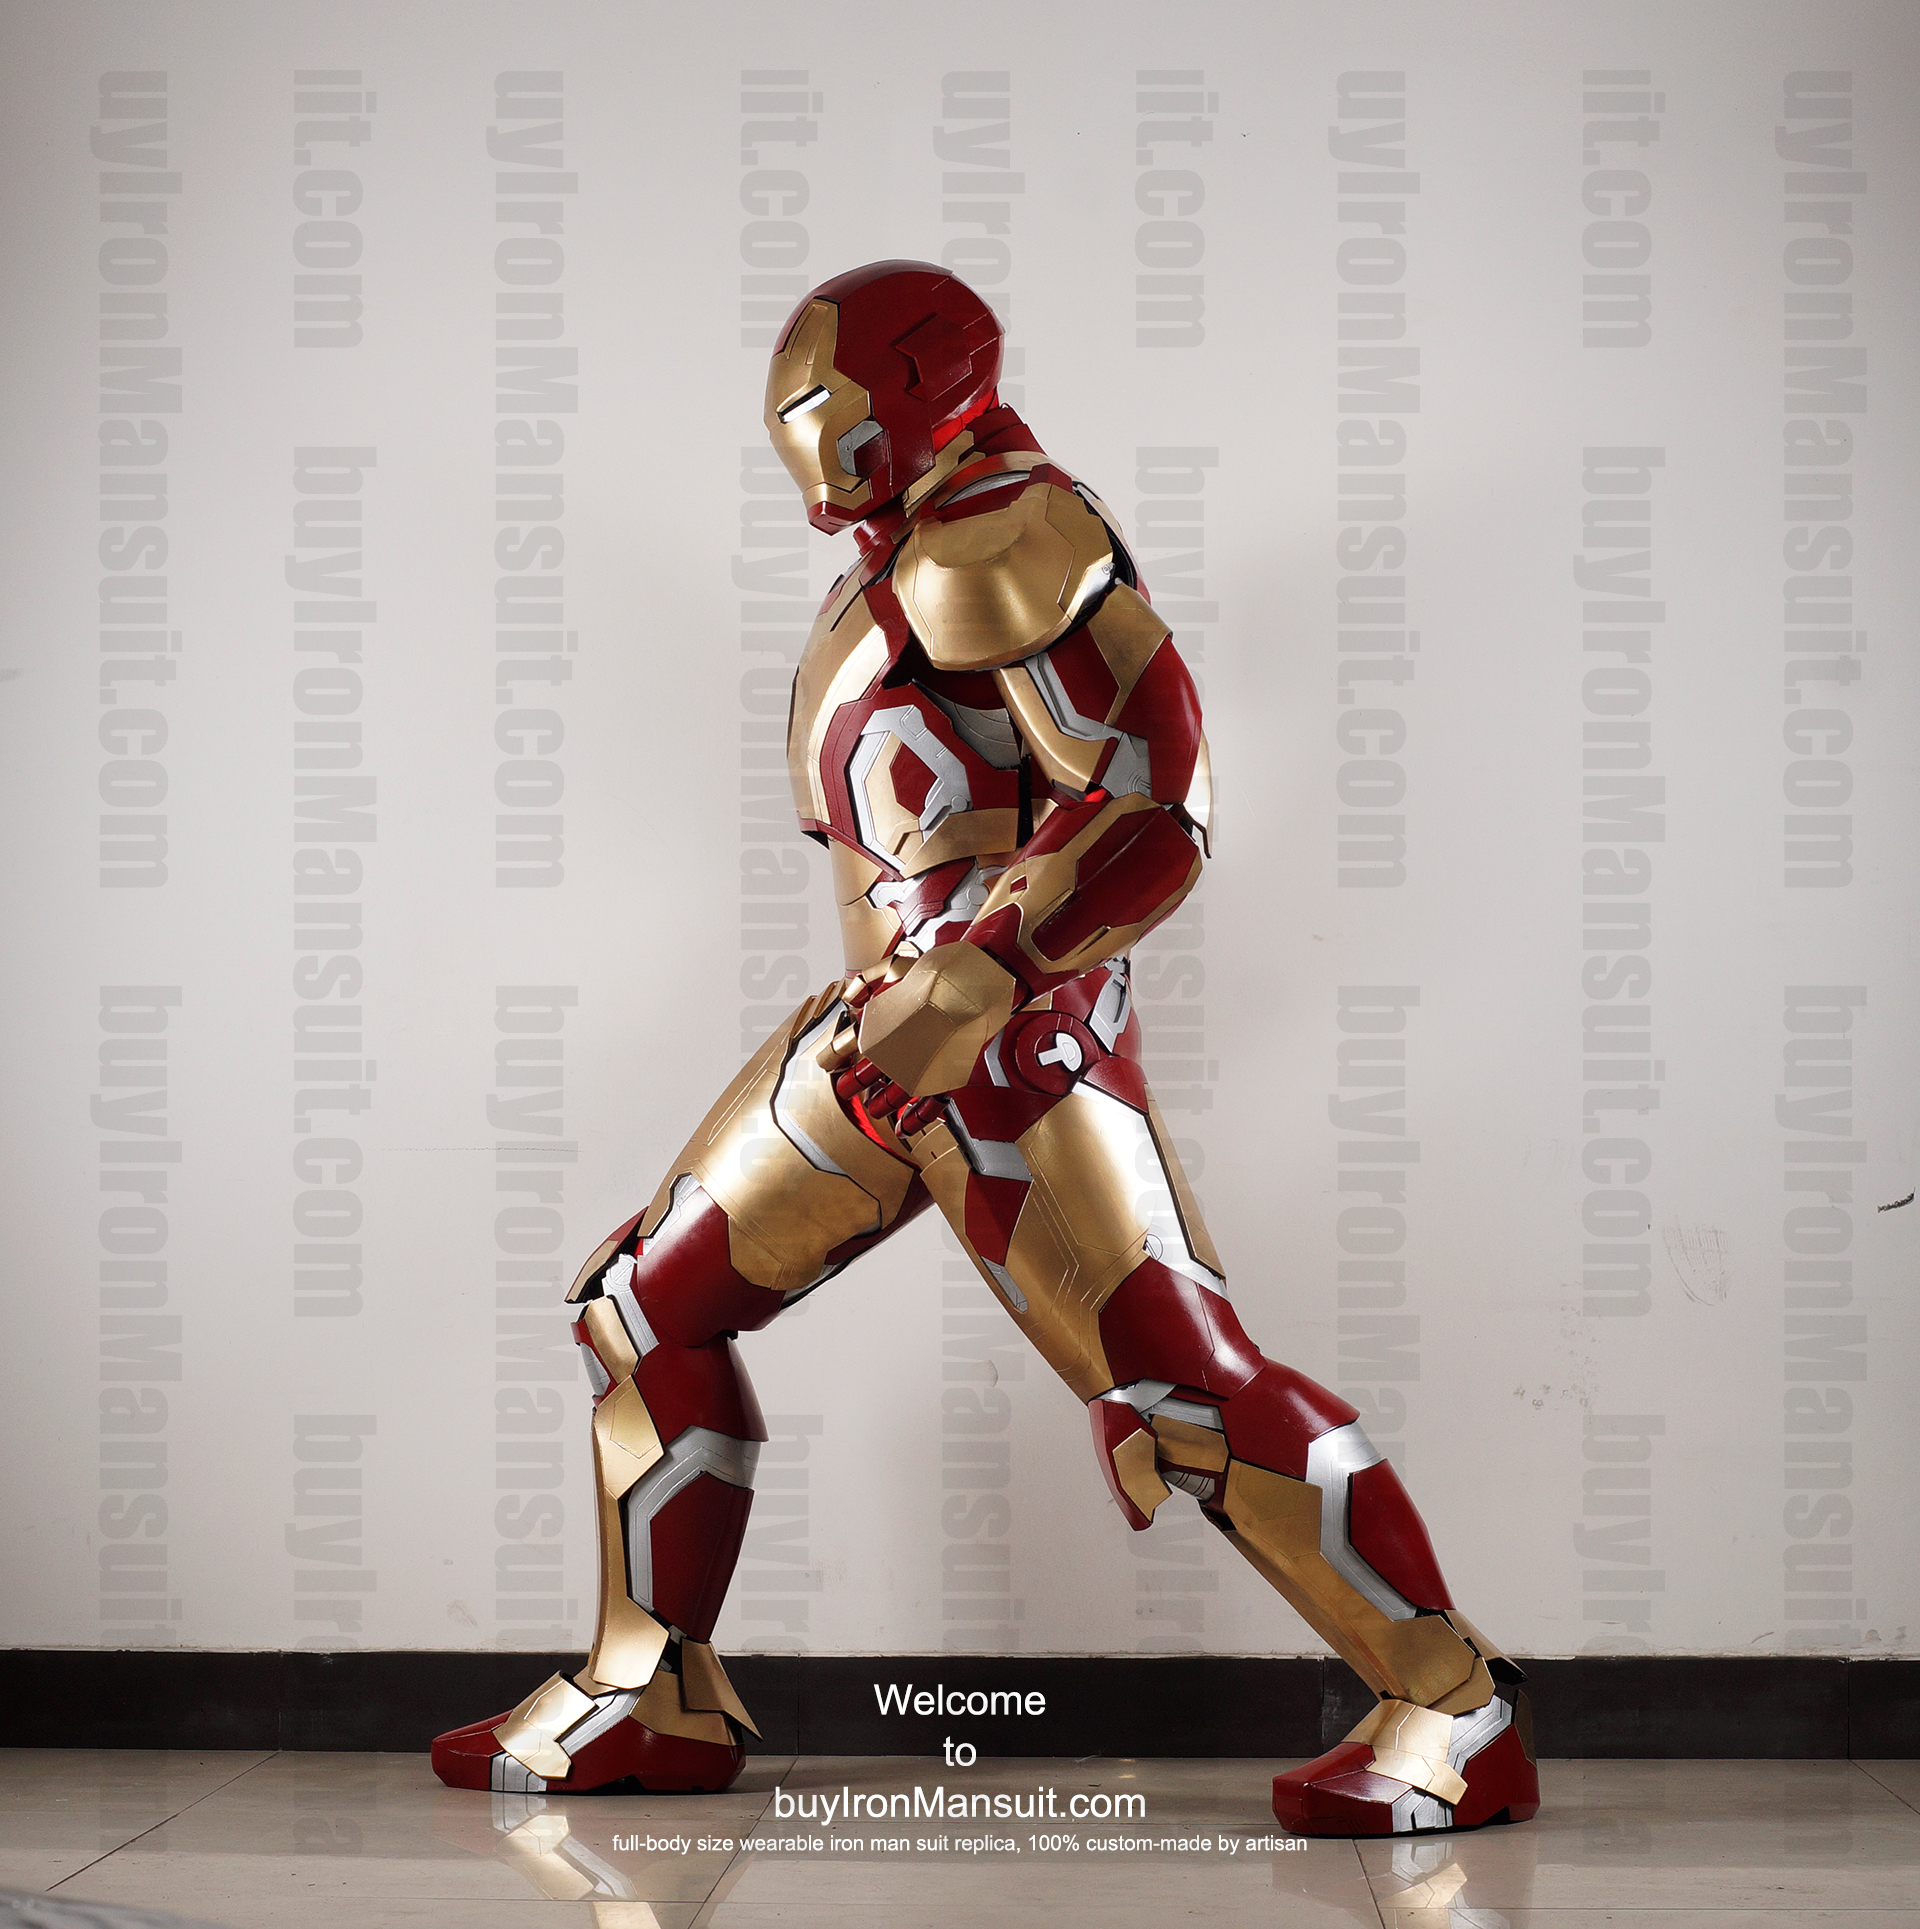 Buy Iron Man Suit Replica Buy Iron Man Suit Mark 42 Side